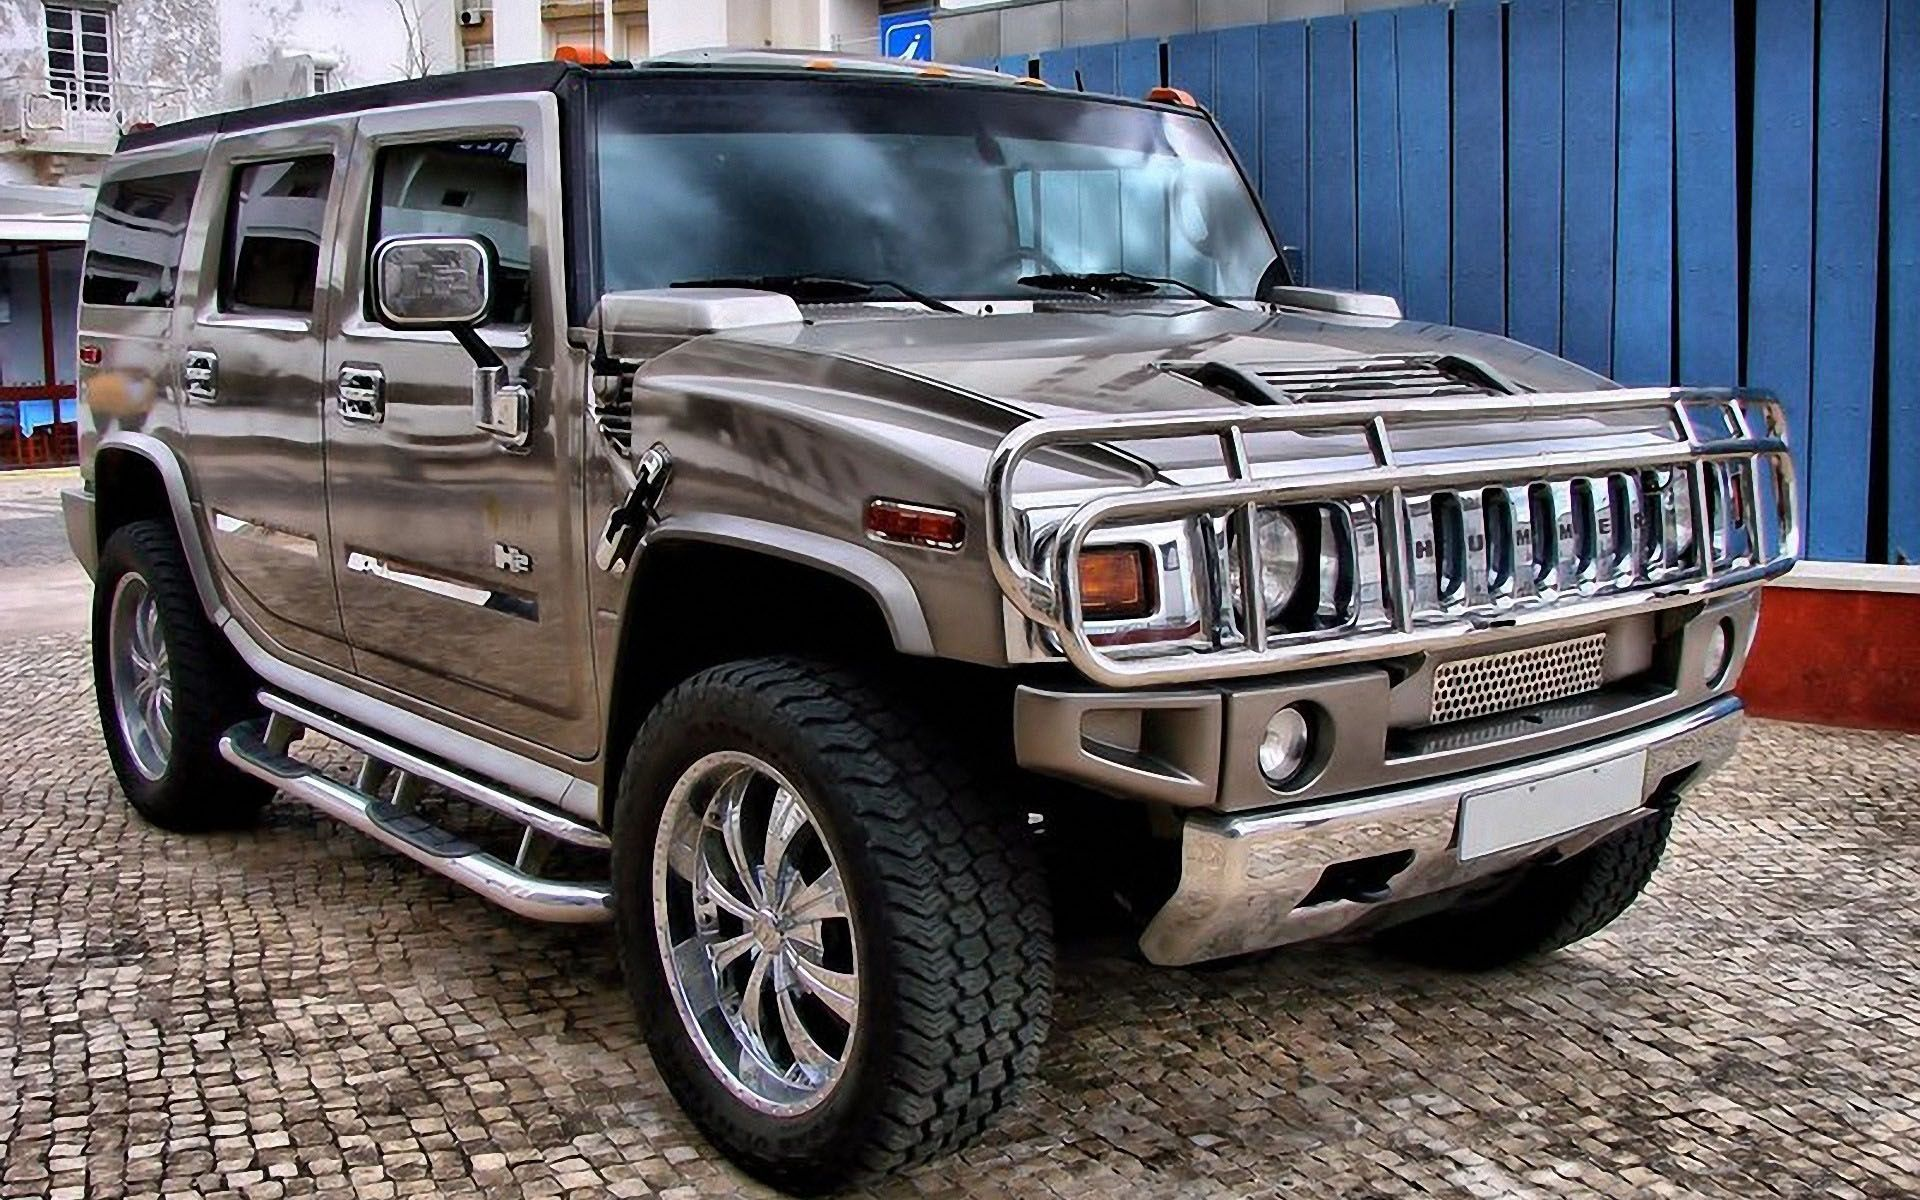 hummer h2 car wallpapers hd. Black Bedroom Furniture Sets. Home Design Ideas